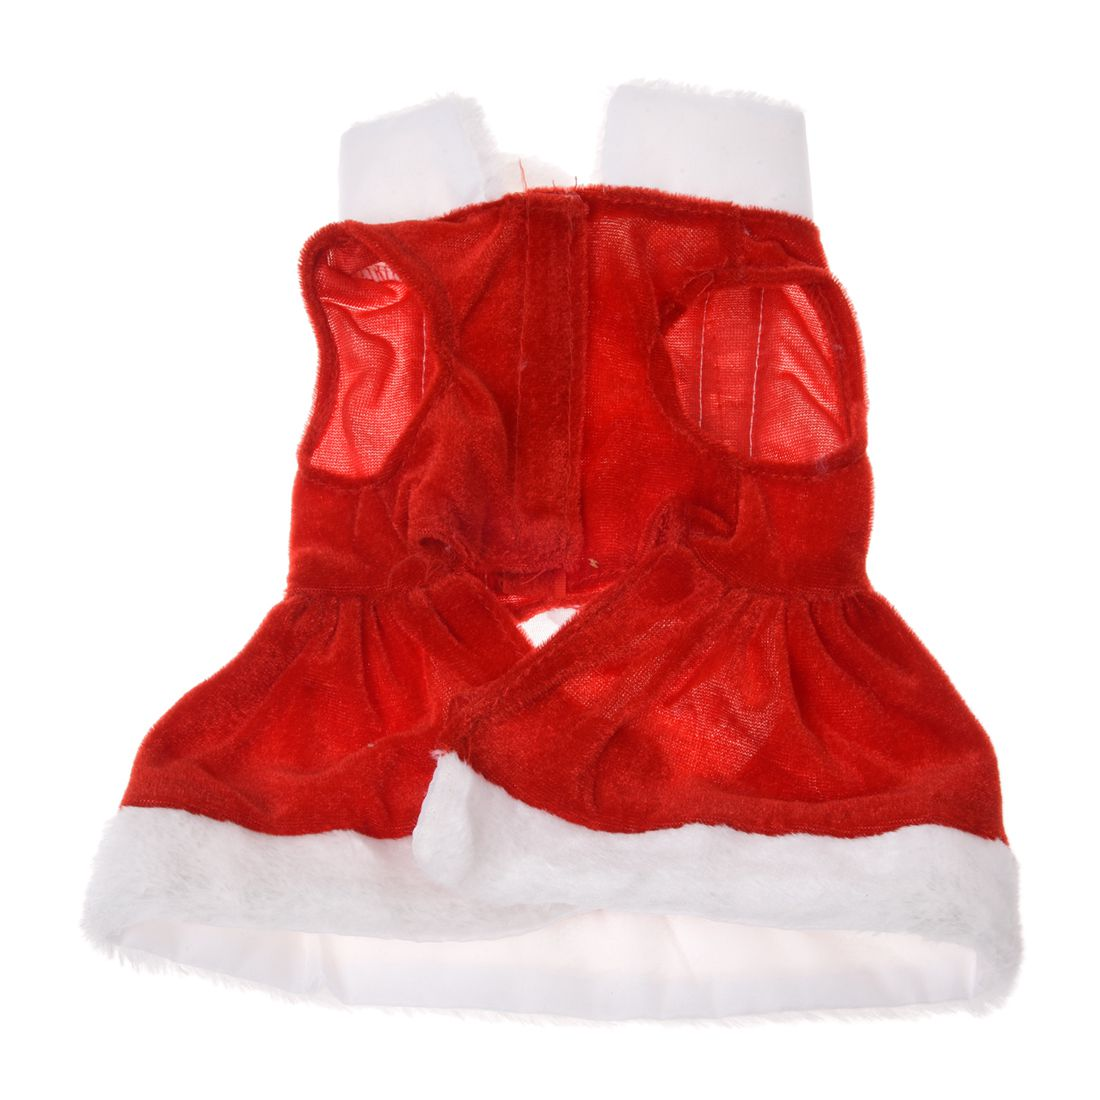 HOT SALE Skirt clothing for dog cat animals Pet Christmas Xmas Party - Size XS